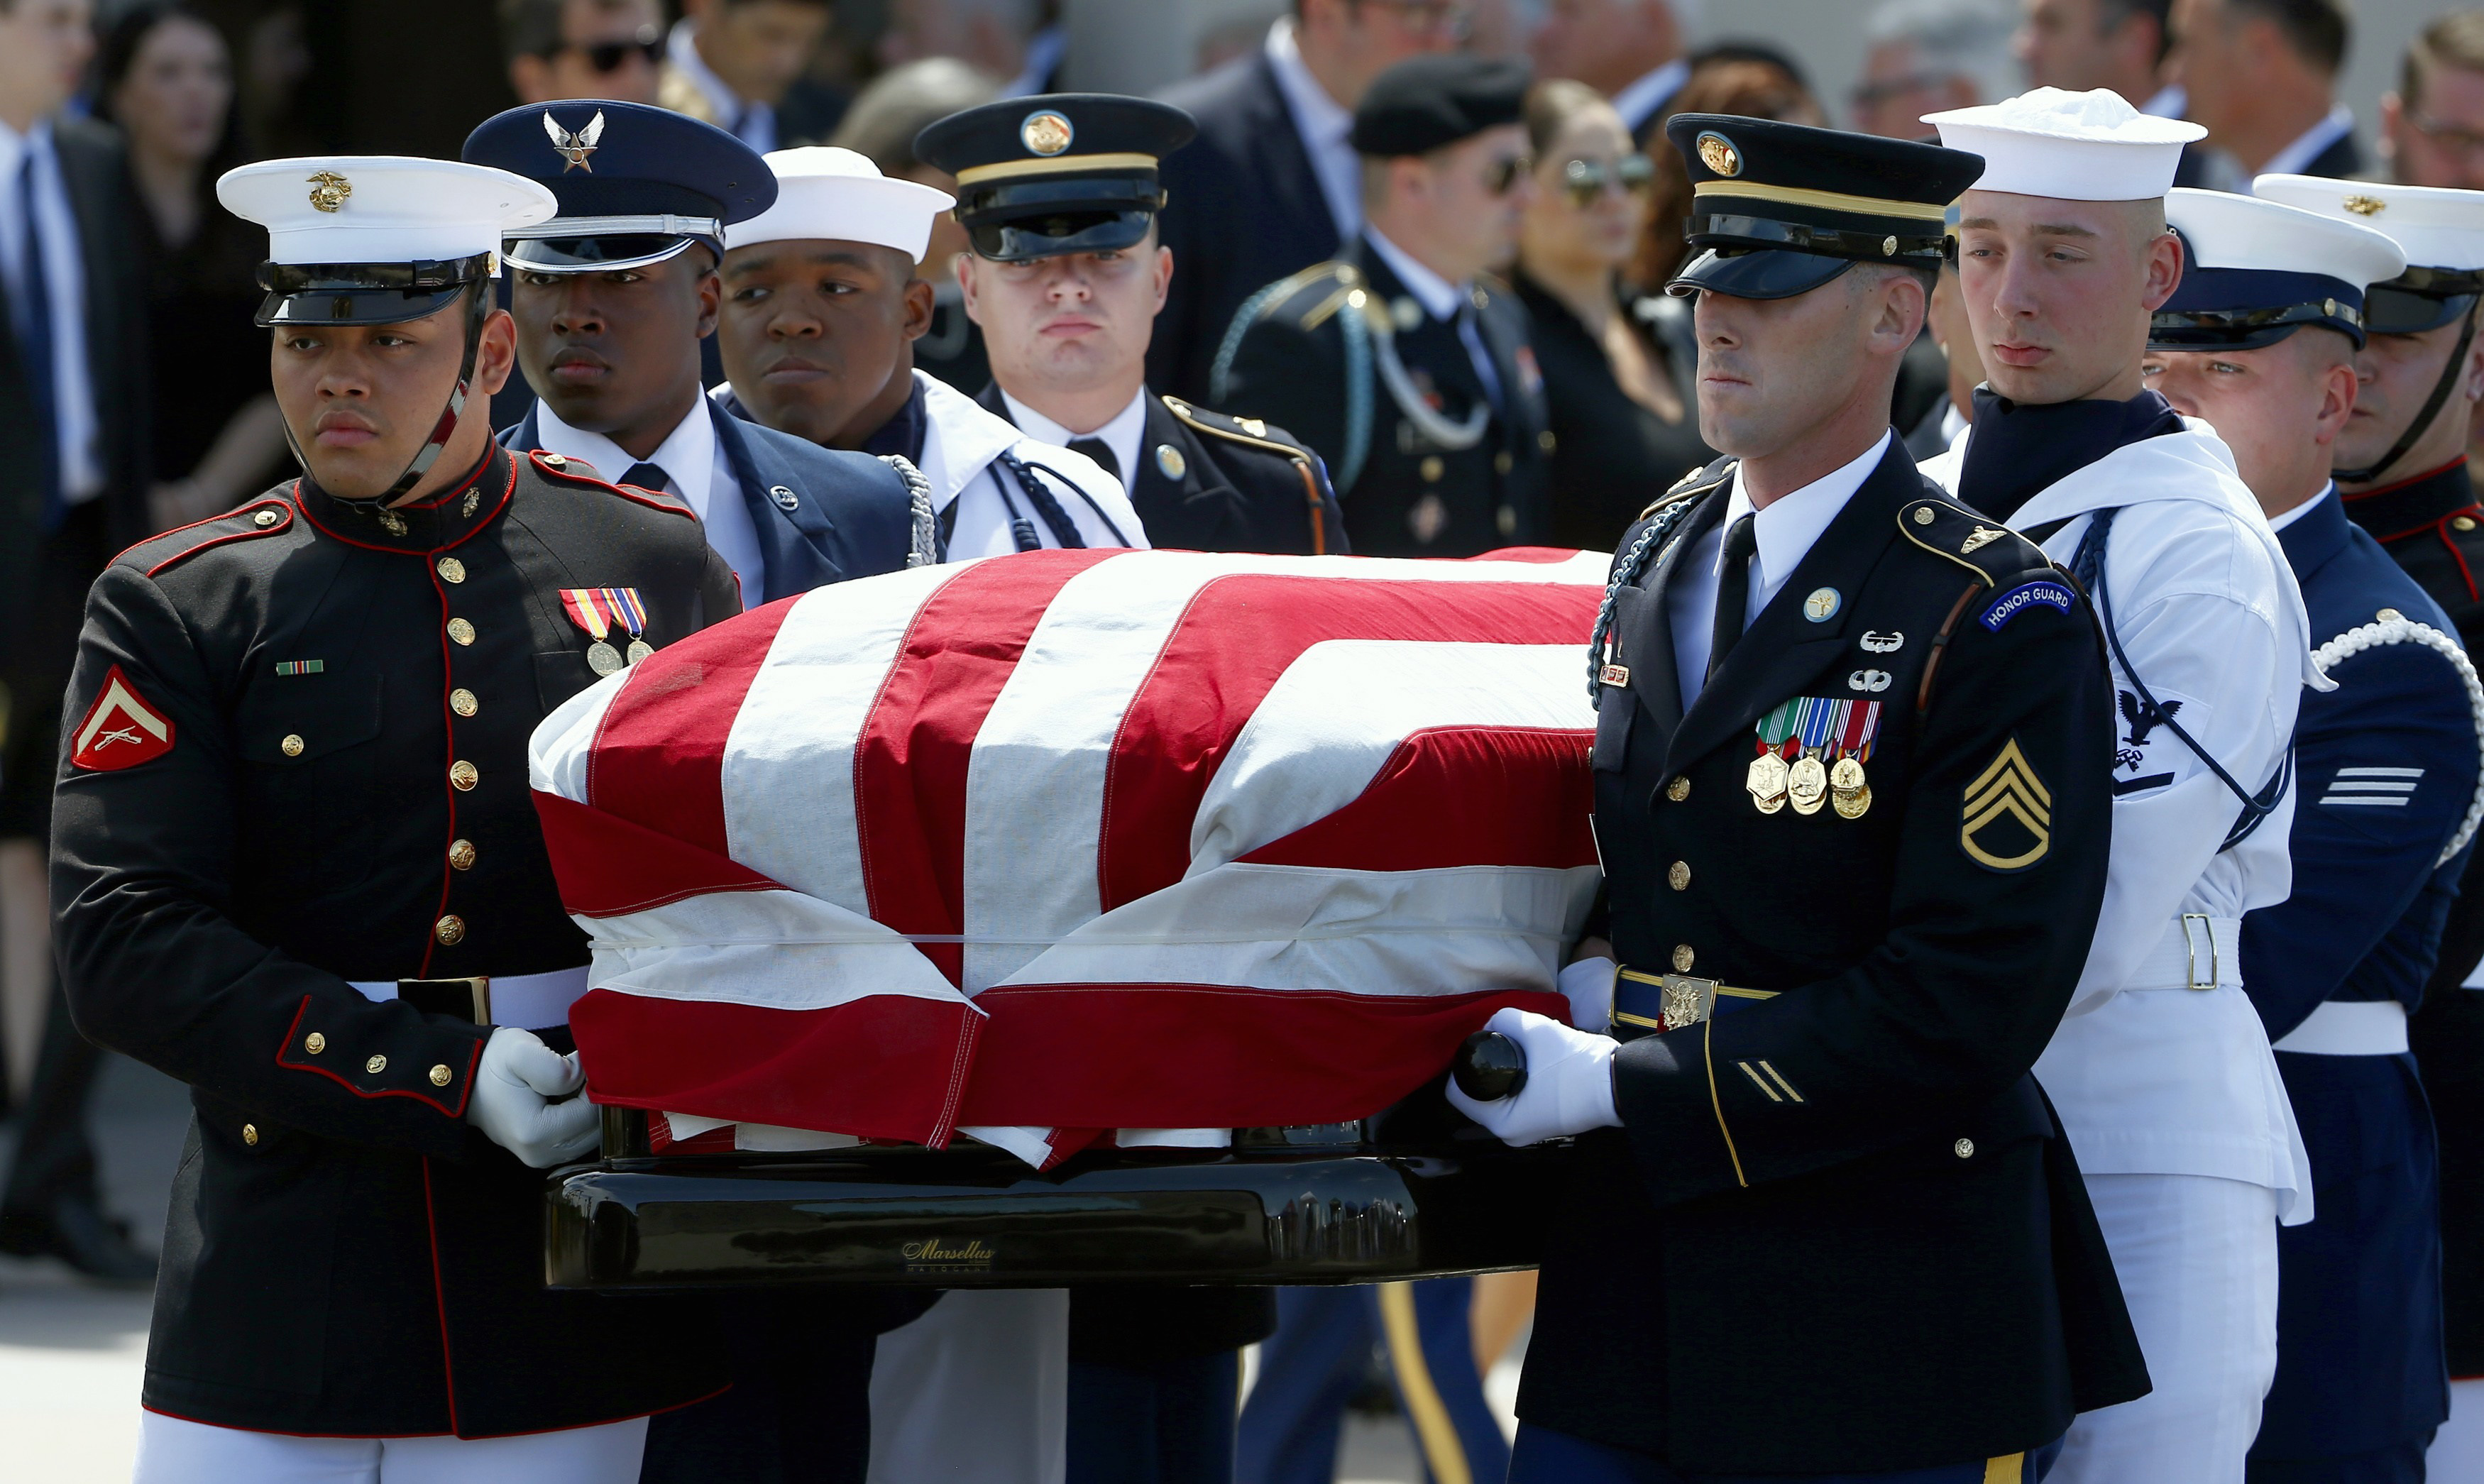 A Memorial Service For John Mccain Was Held Today In